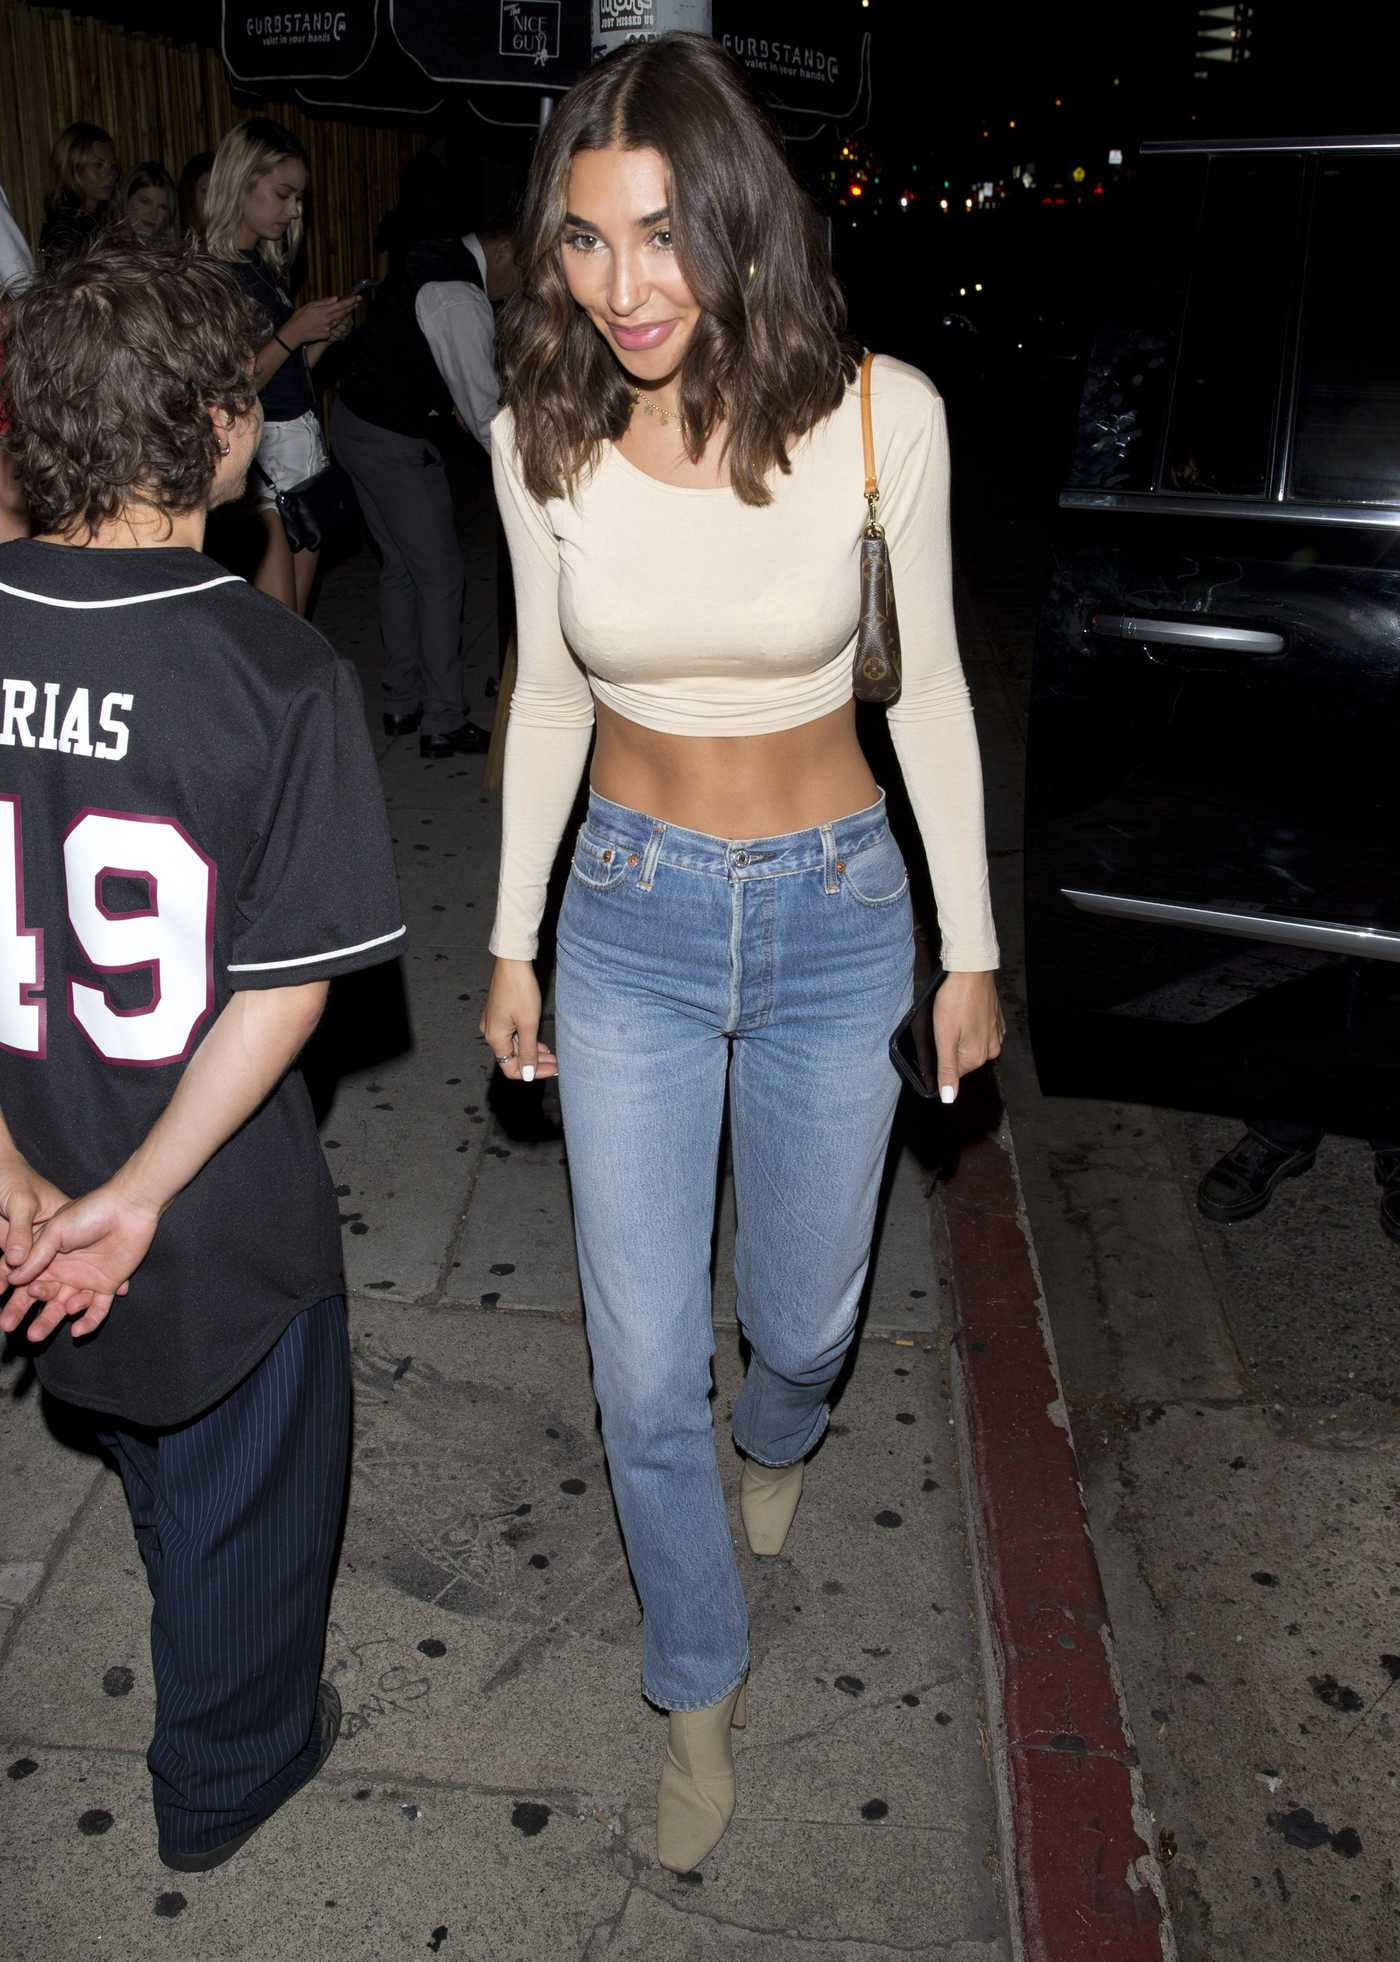 Chantel Jeffries Shows off Her Flat Tummy at Milk Studios in Hollywood 08/24/2018